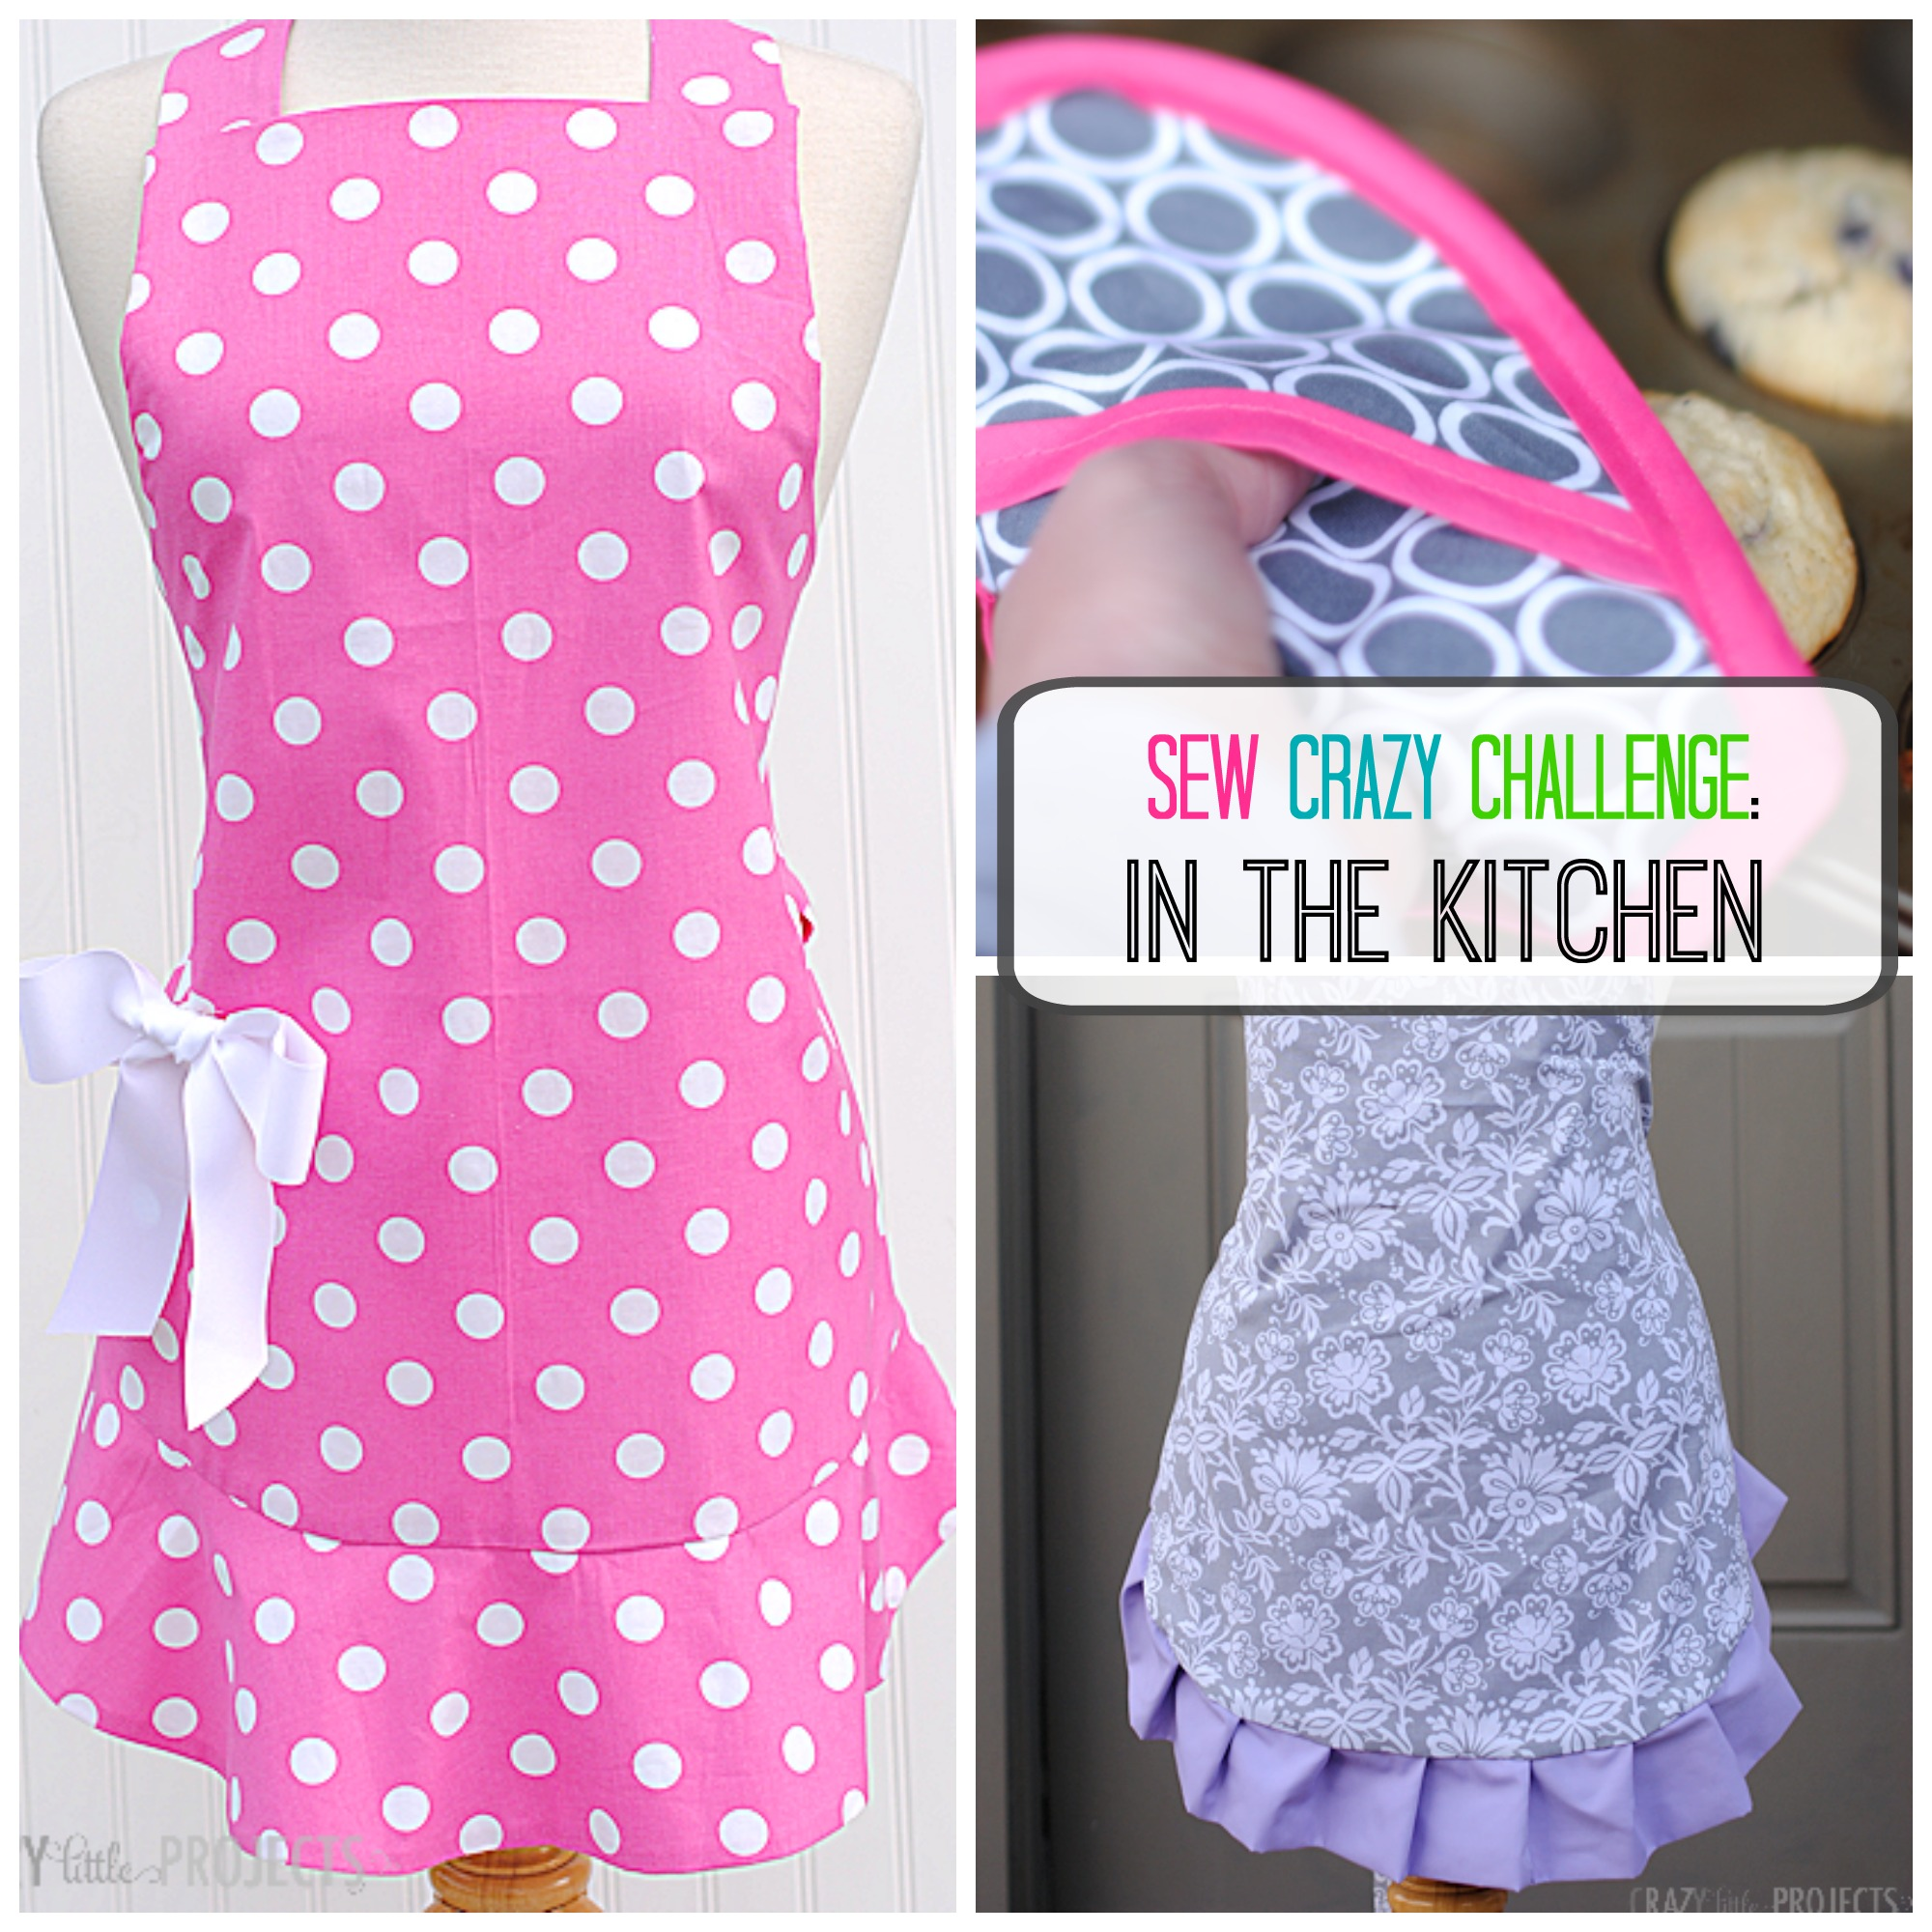 Sewing Challenge-Sew a project, enter to win prizes!